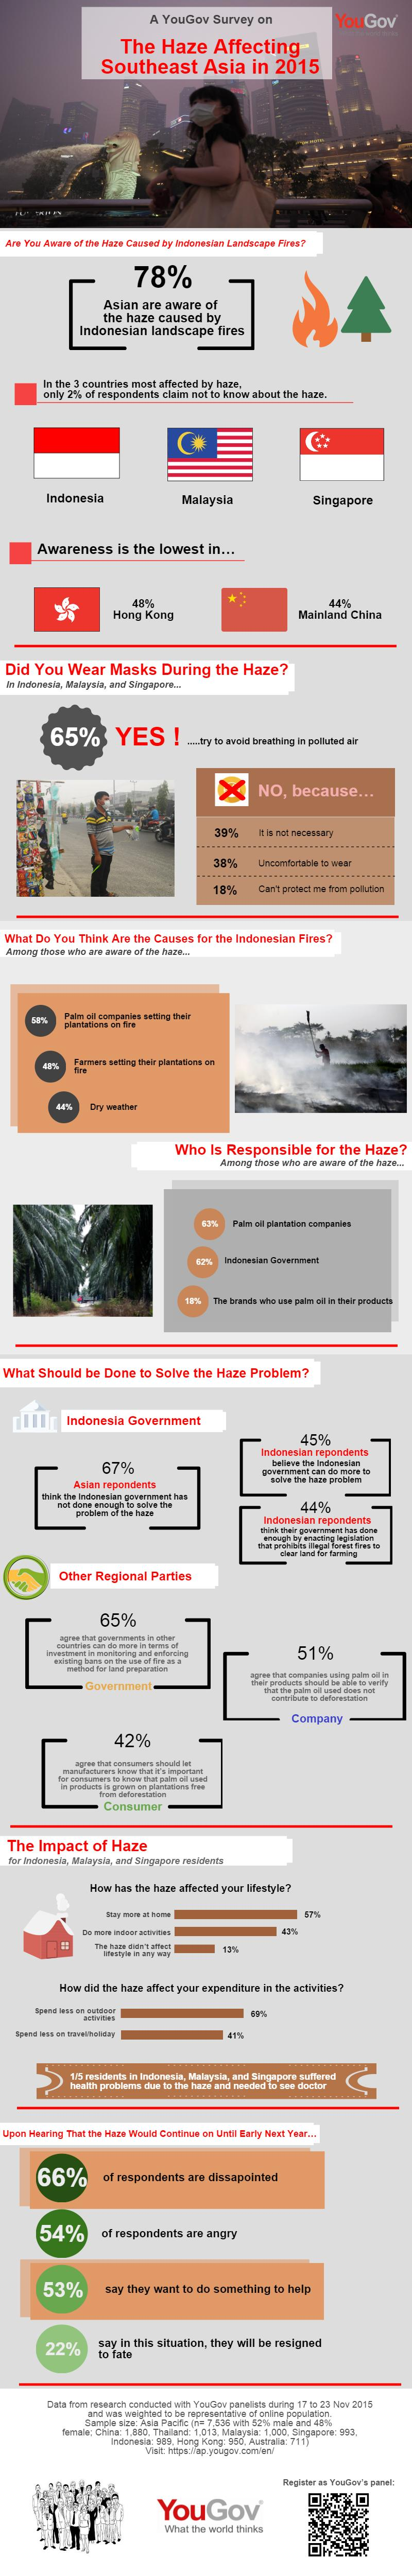 YouGov_The Haze affecting Southeast Asia_151204